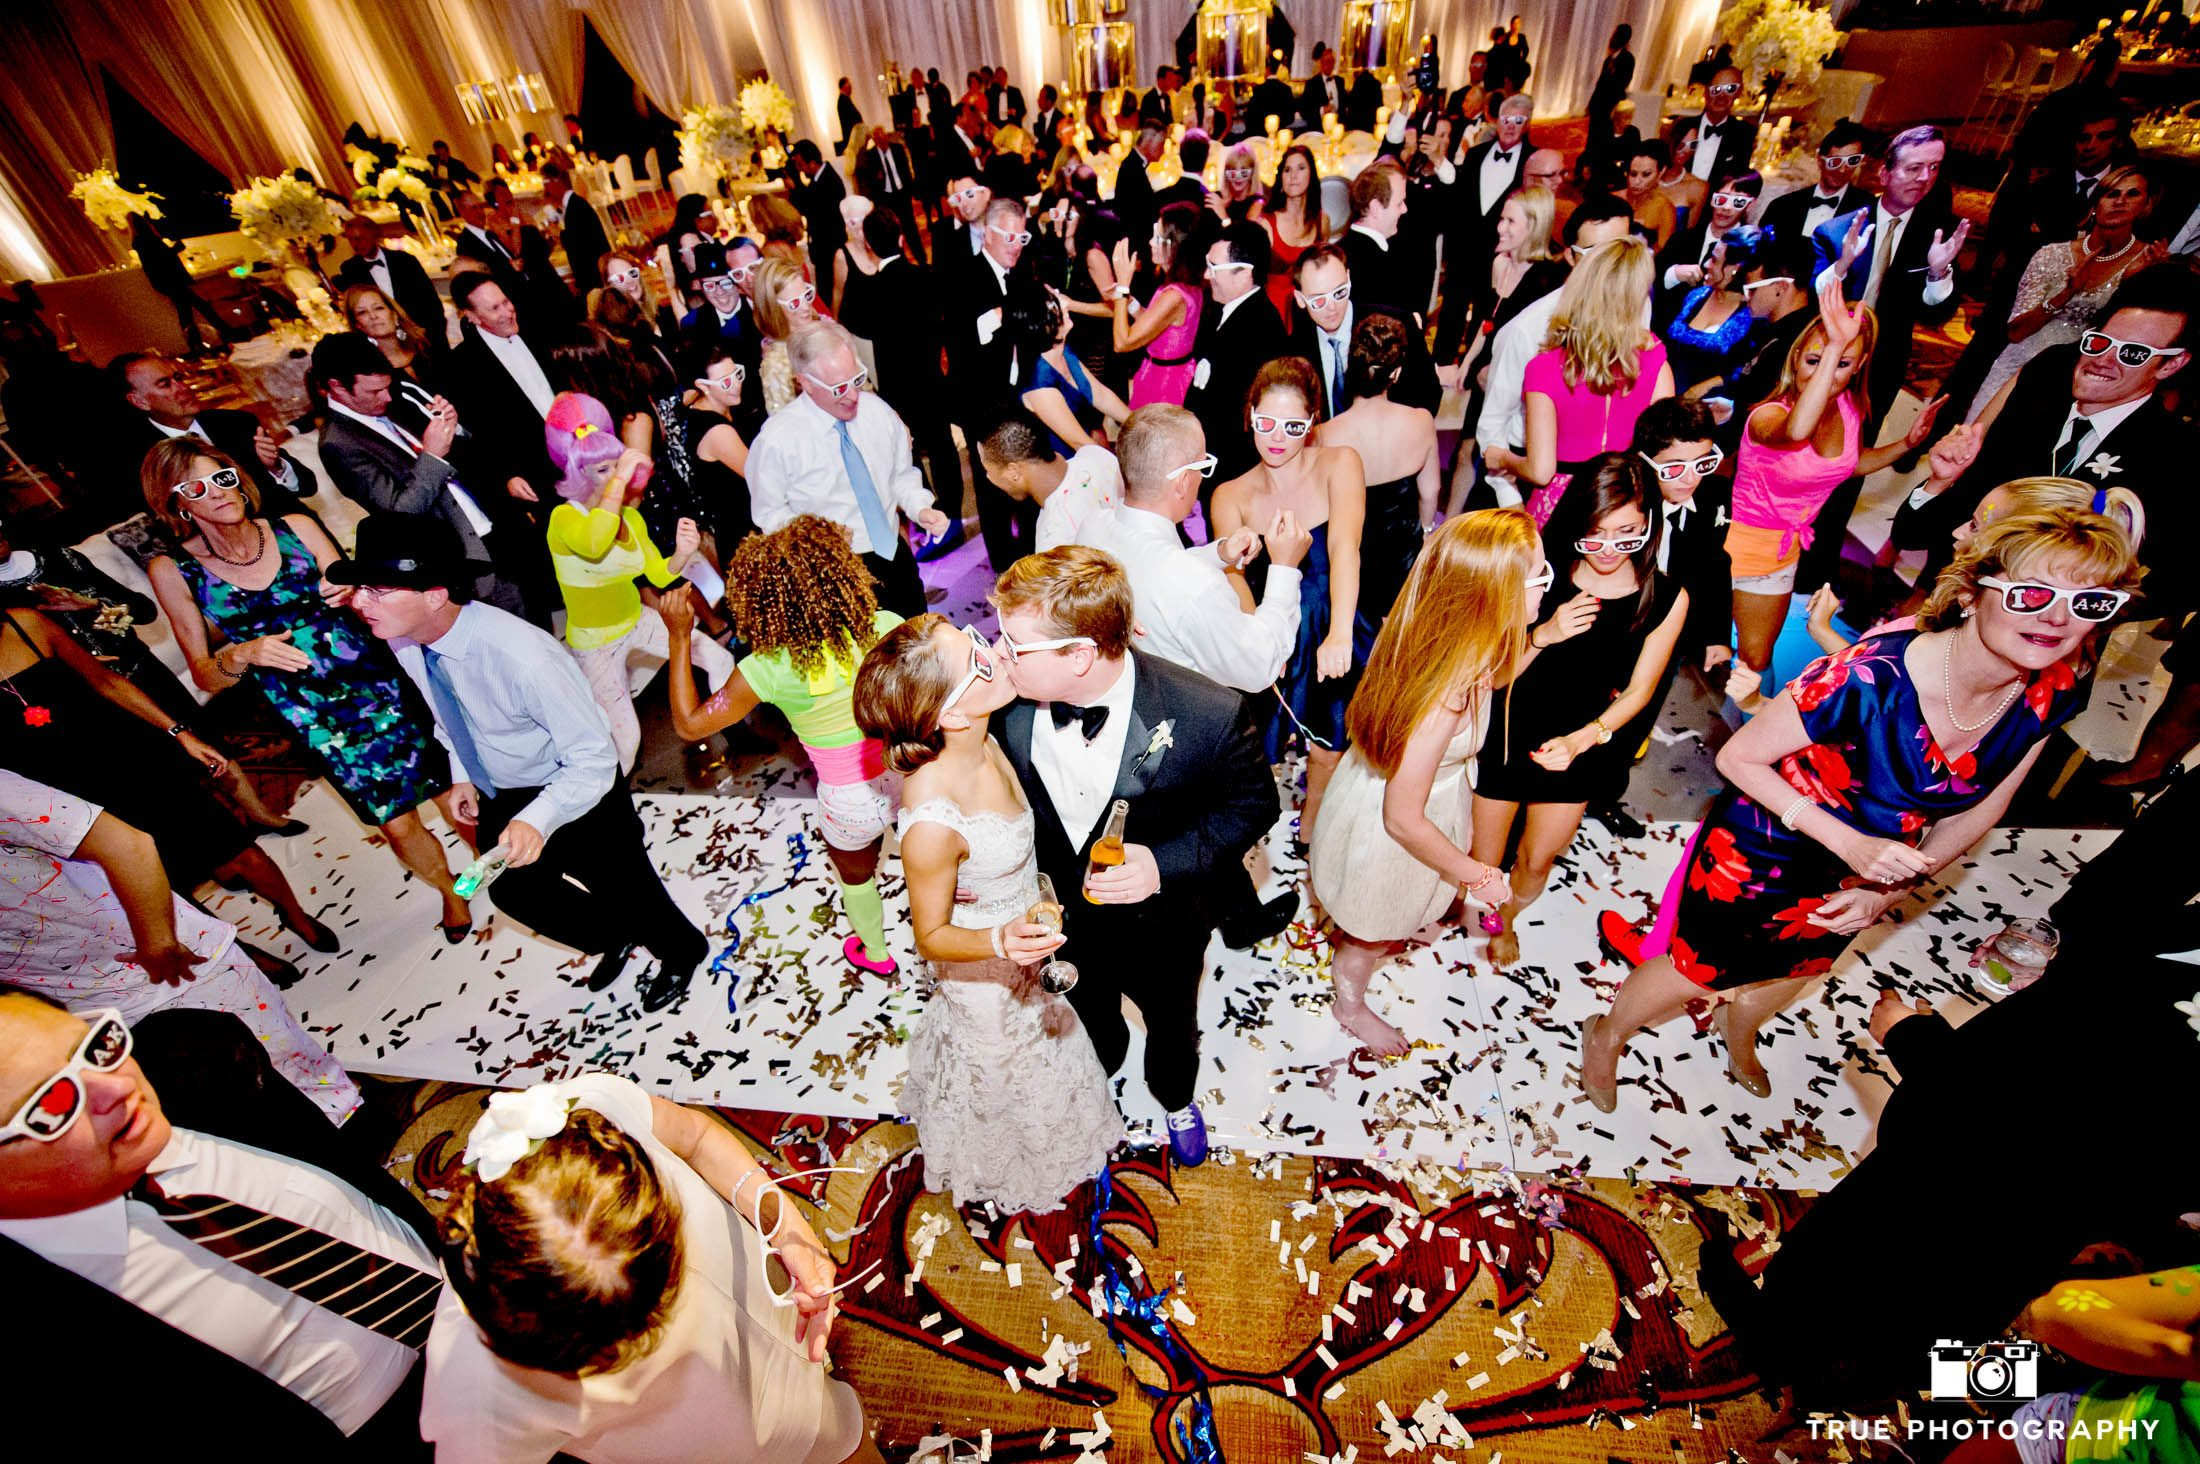 Bride and Groom stand in crowd and kiss during wedding reception